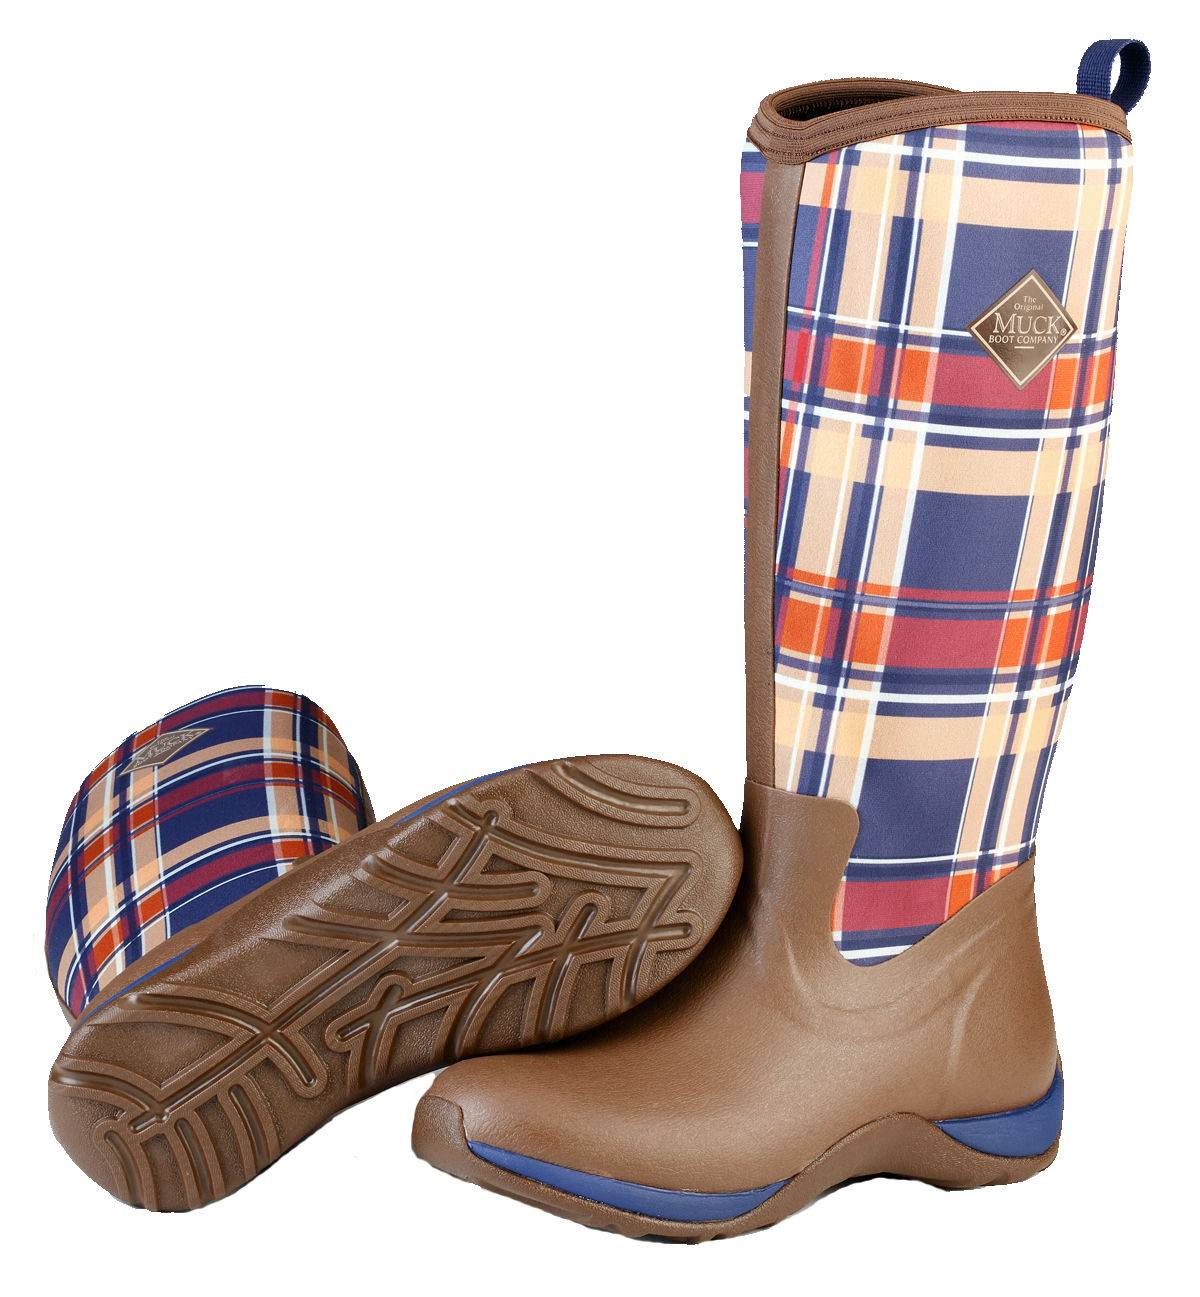 Muck Boots Women's Arctic Adventure - Brown/Navy Plaid